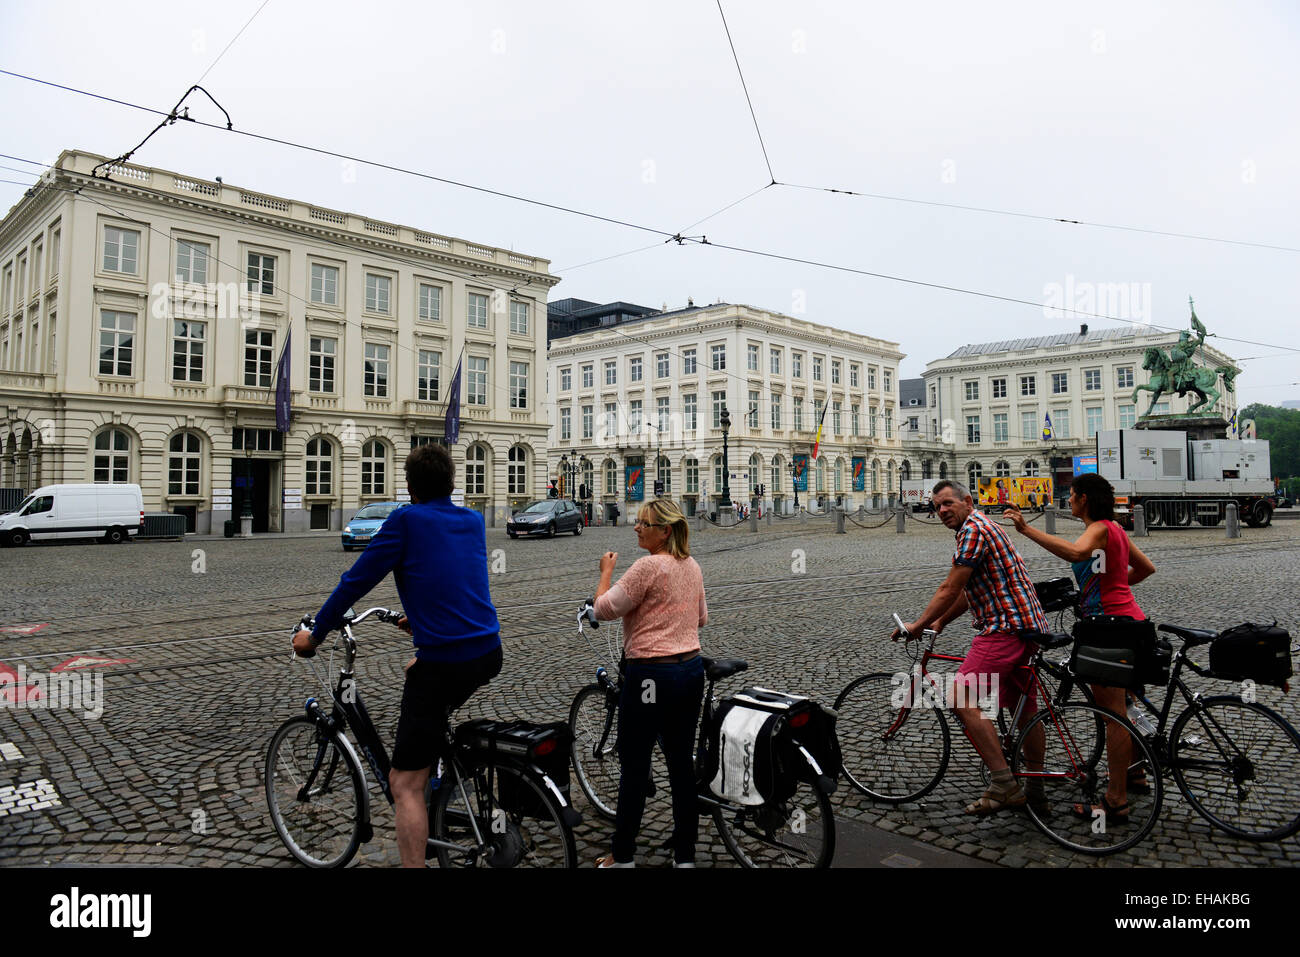 Cycling through Place Royale ( Royal square ) in Brussels. - Stock Image